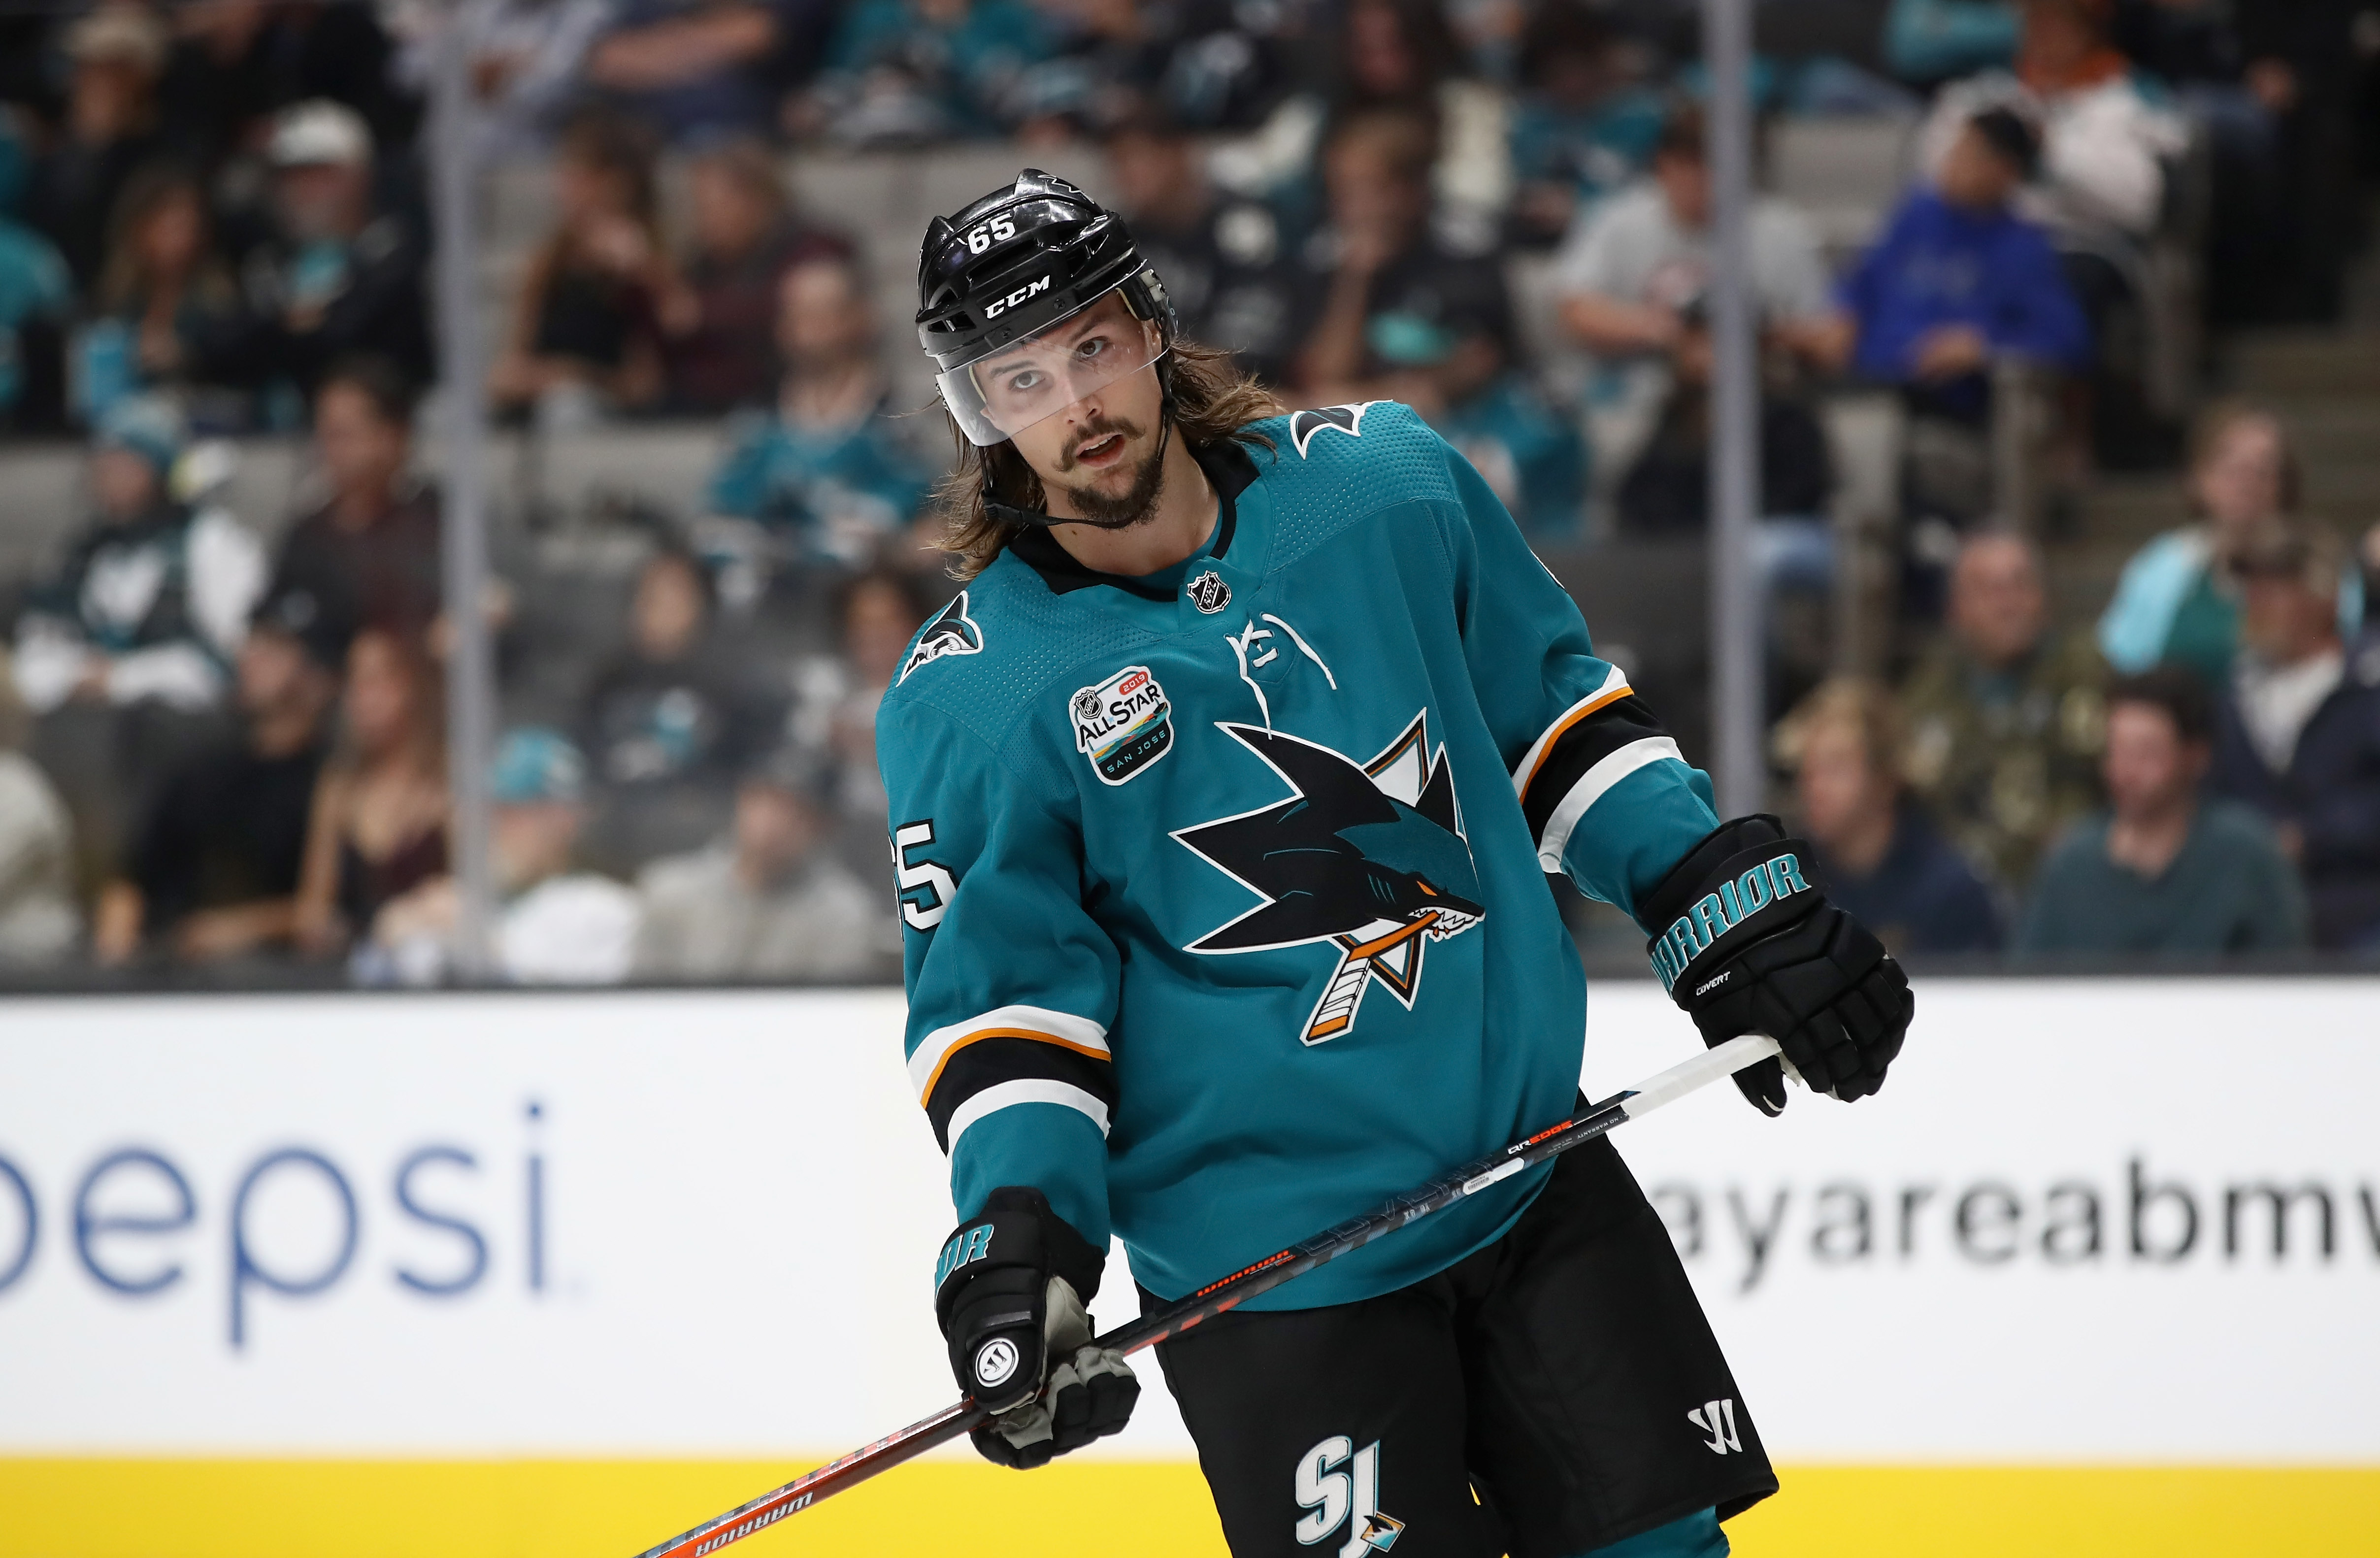 SAN JOSE, CA - OCTOBER 03: Erik Karlsson #65 of the San Jose Sharks skates on the ice during their game against the Anaheim Ducks at SAP Center on October 3, 2018 in San Jose, California